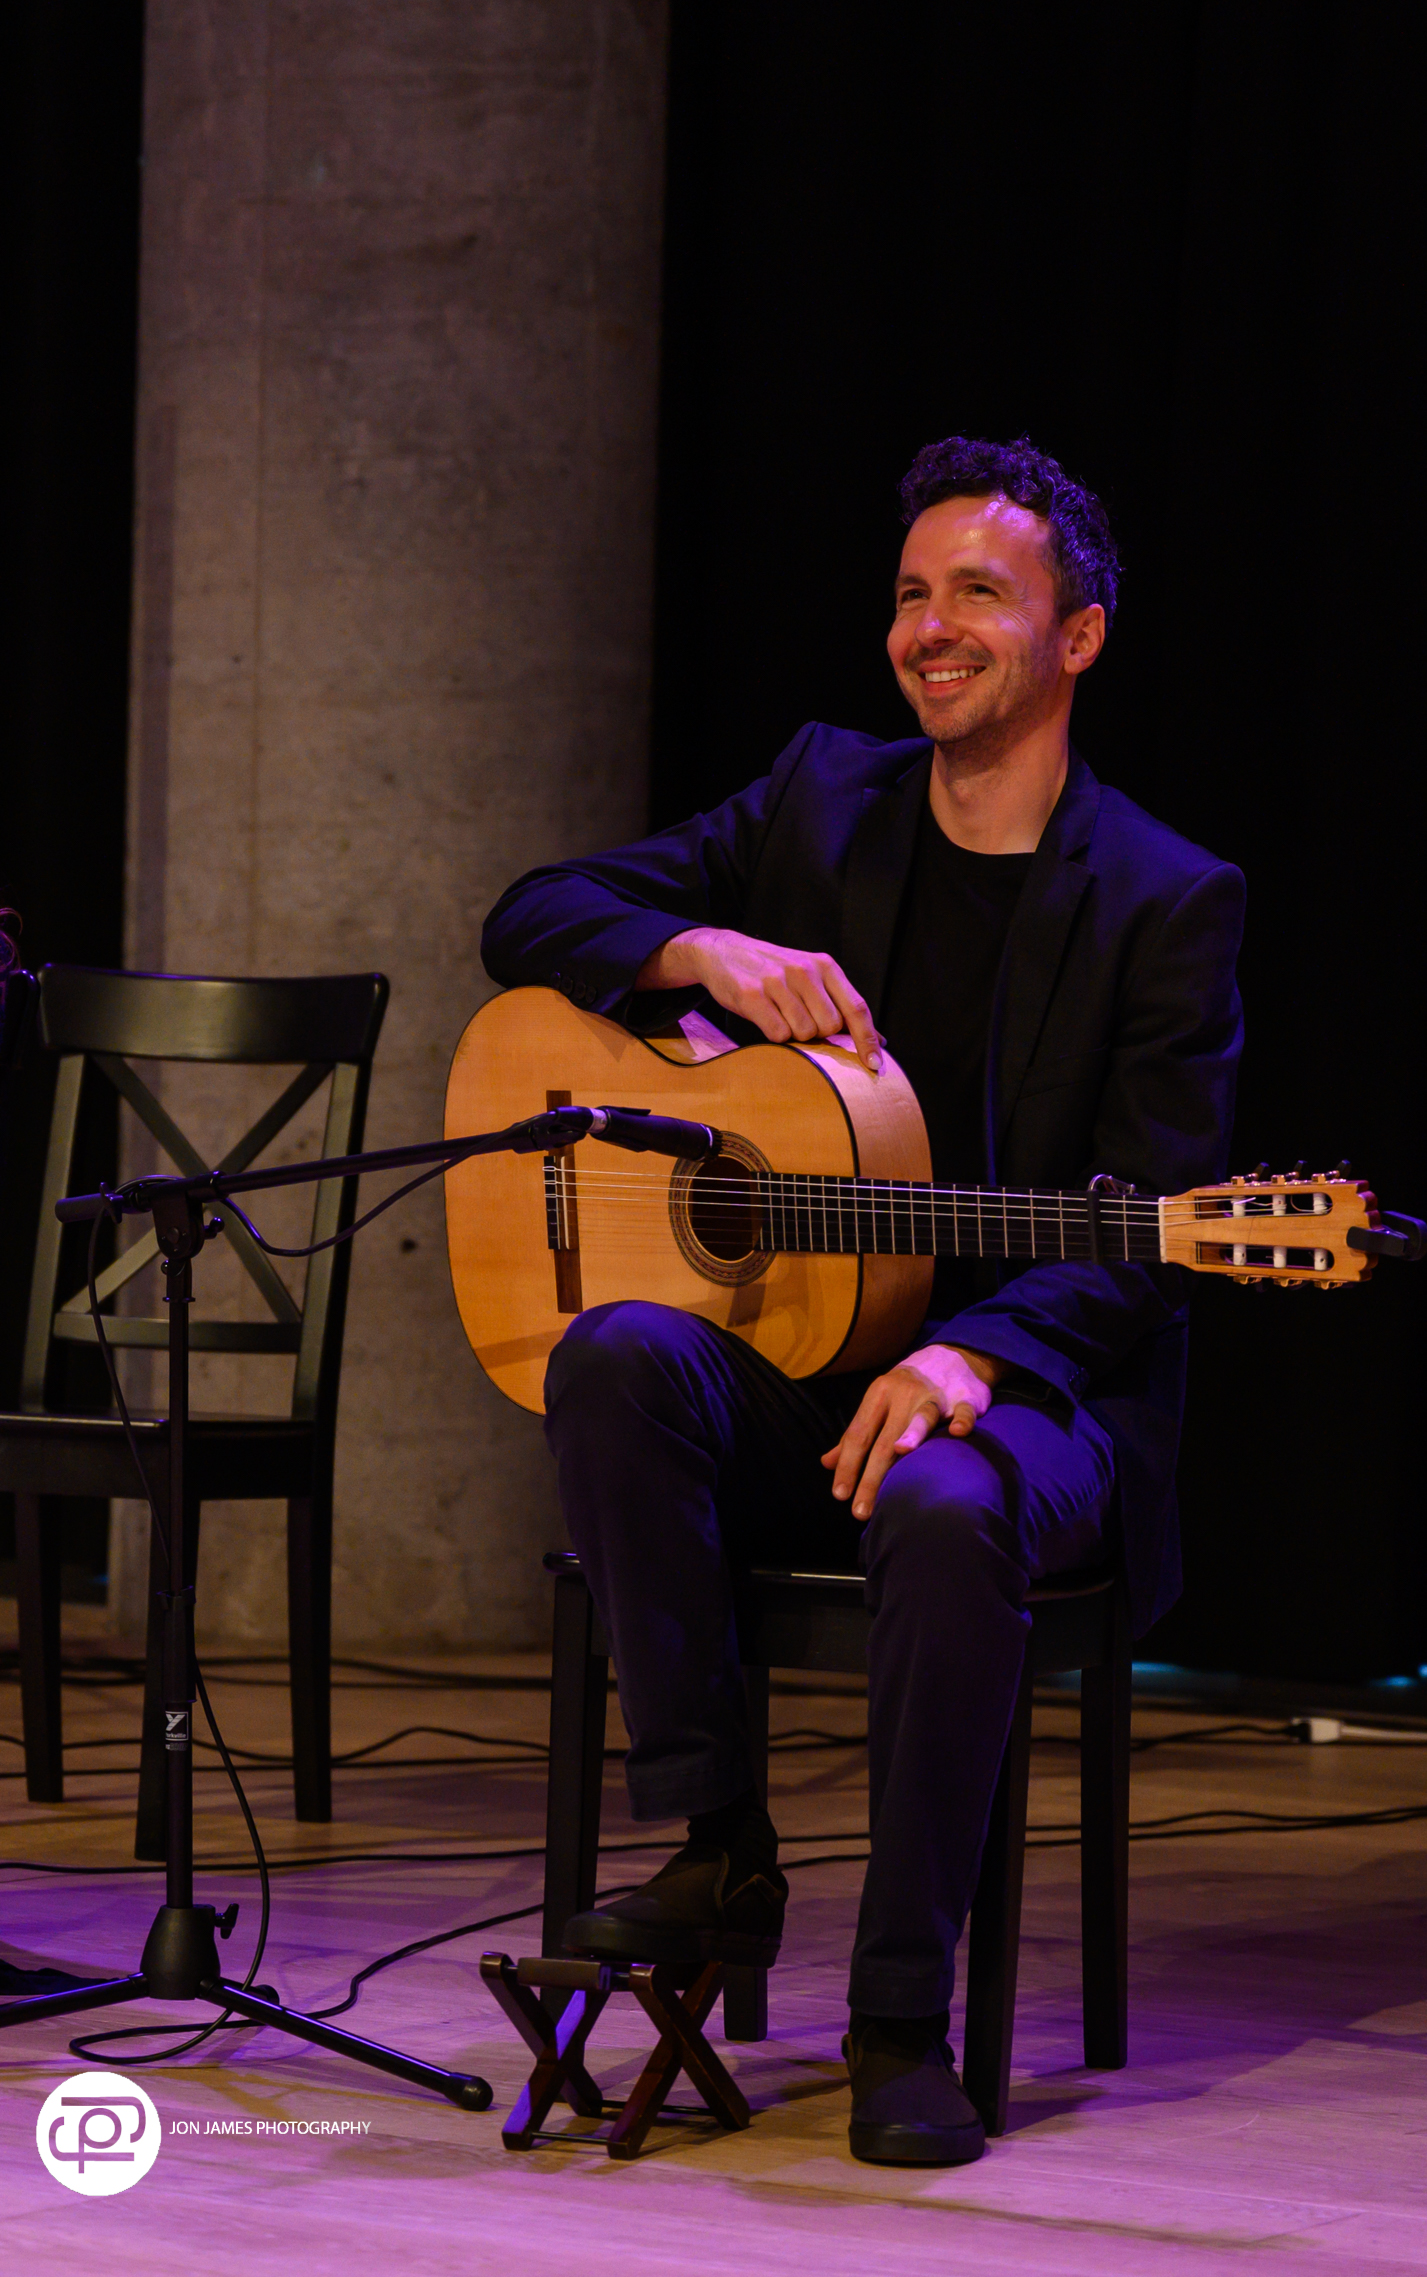 Dan Macneil on stage holding flamenco guitar and smiling at audience